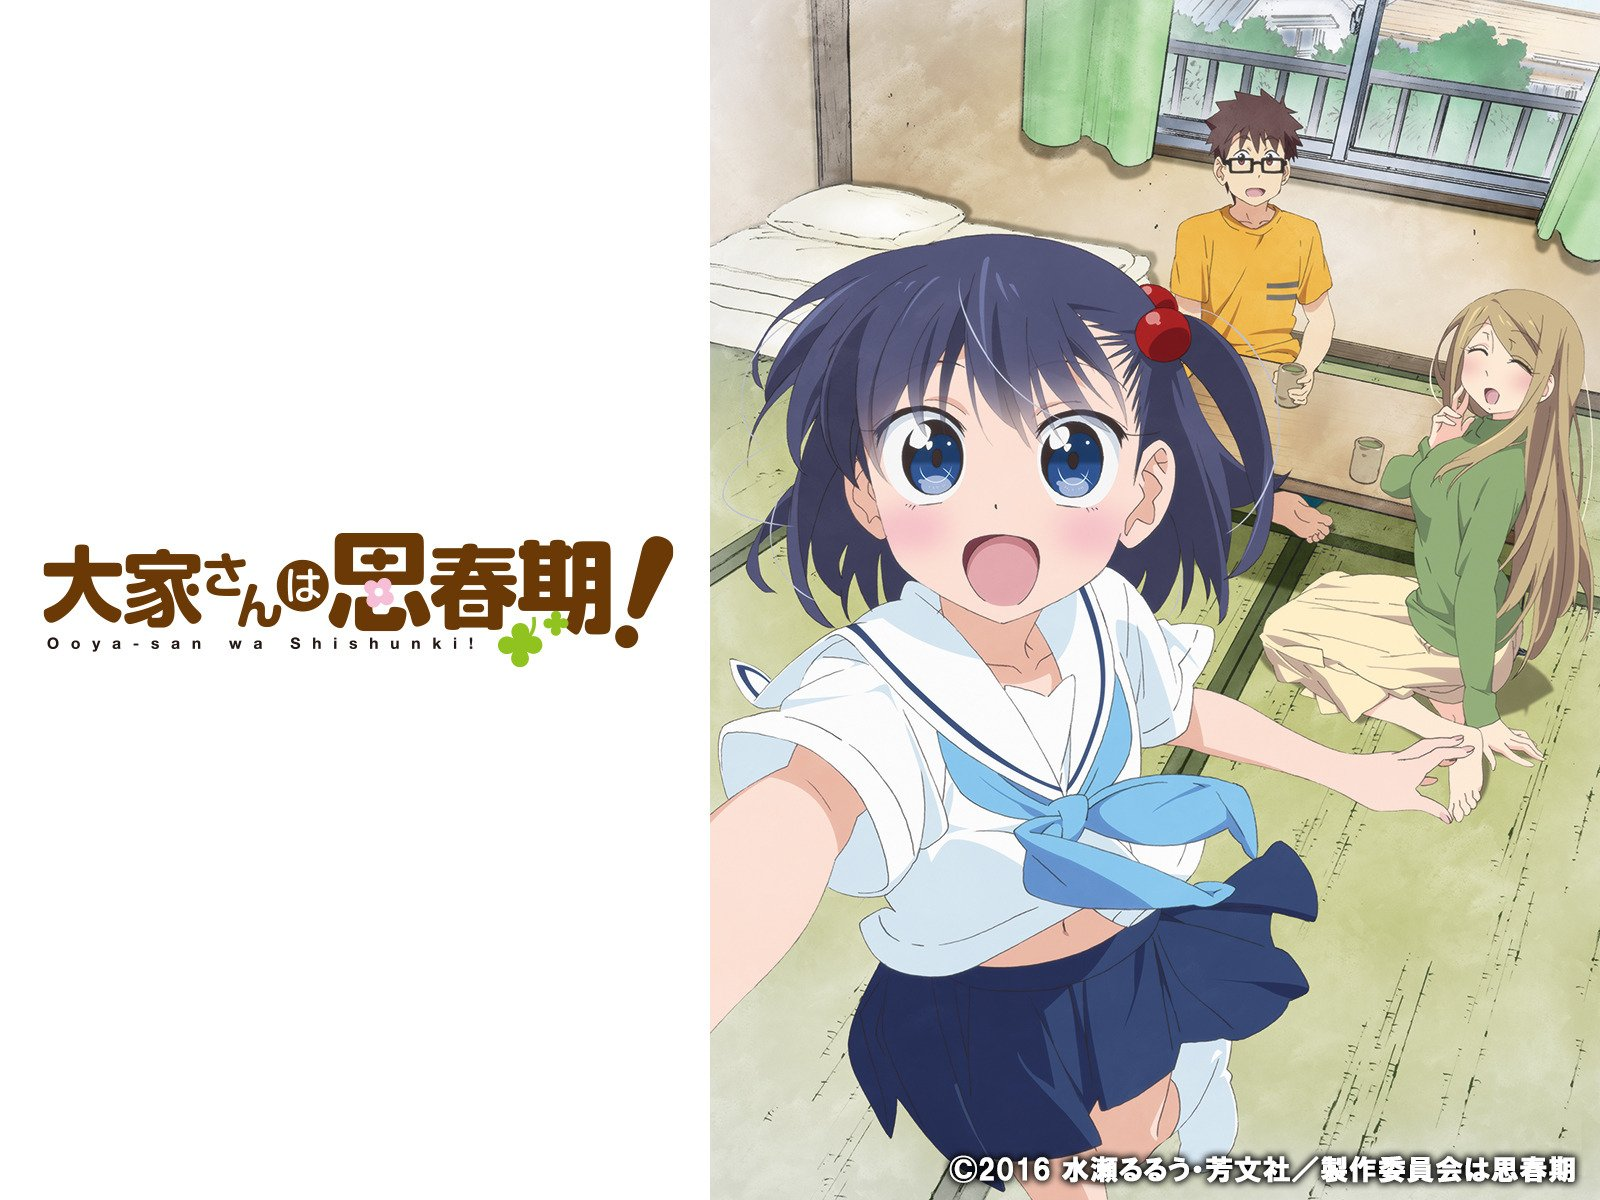 [Snow-Raws] 房东妹子青春期/The Landlord is in Puberty/大家さんは思春期! (BD 1920×1080 HEVC-YUV420P10 FLACx2)